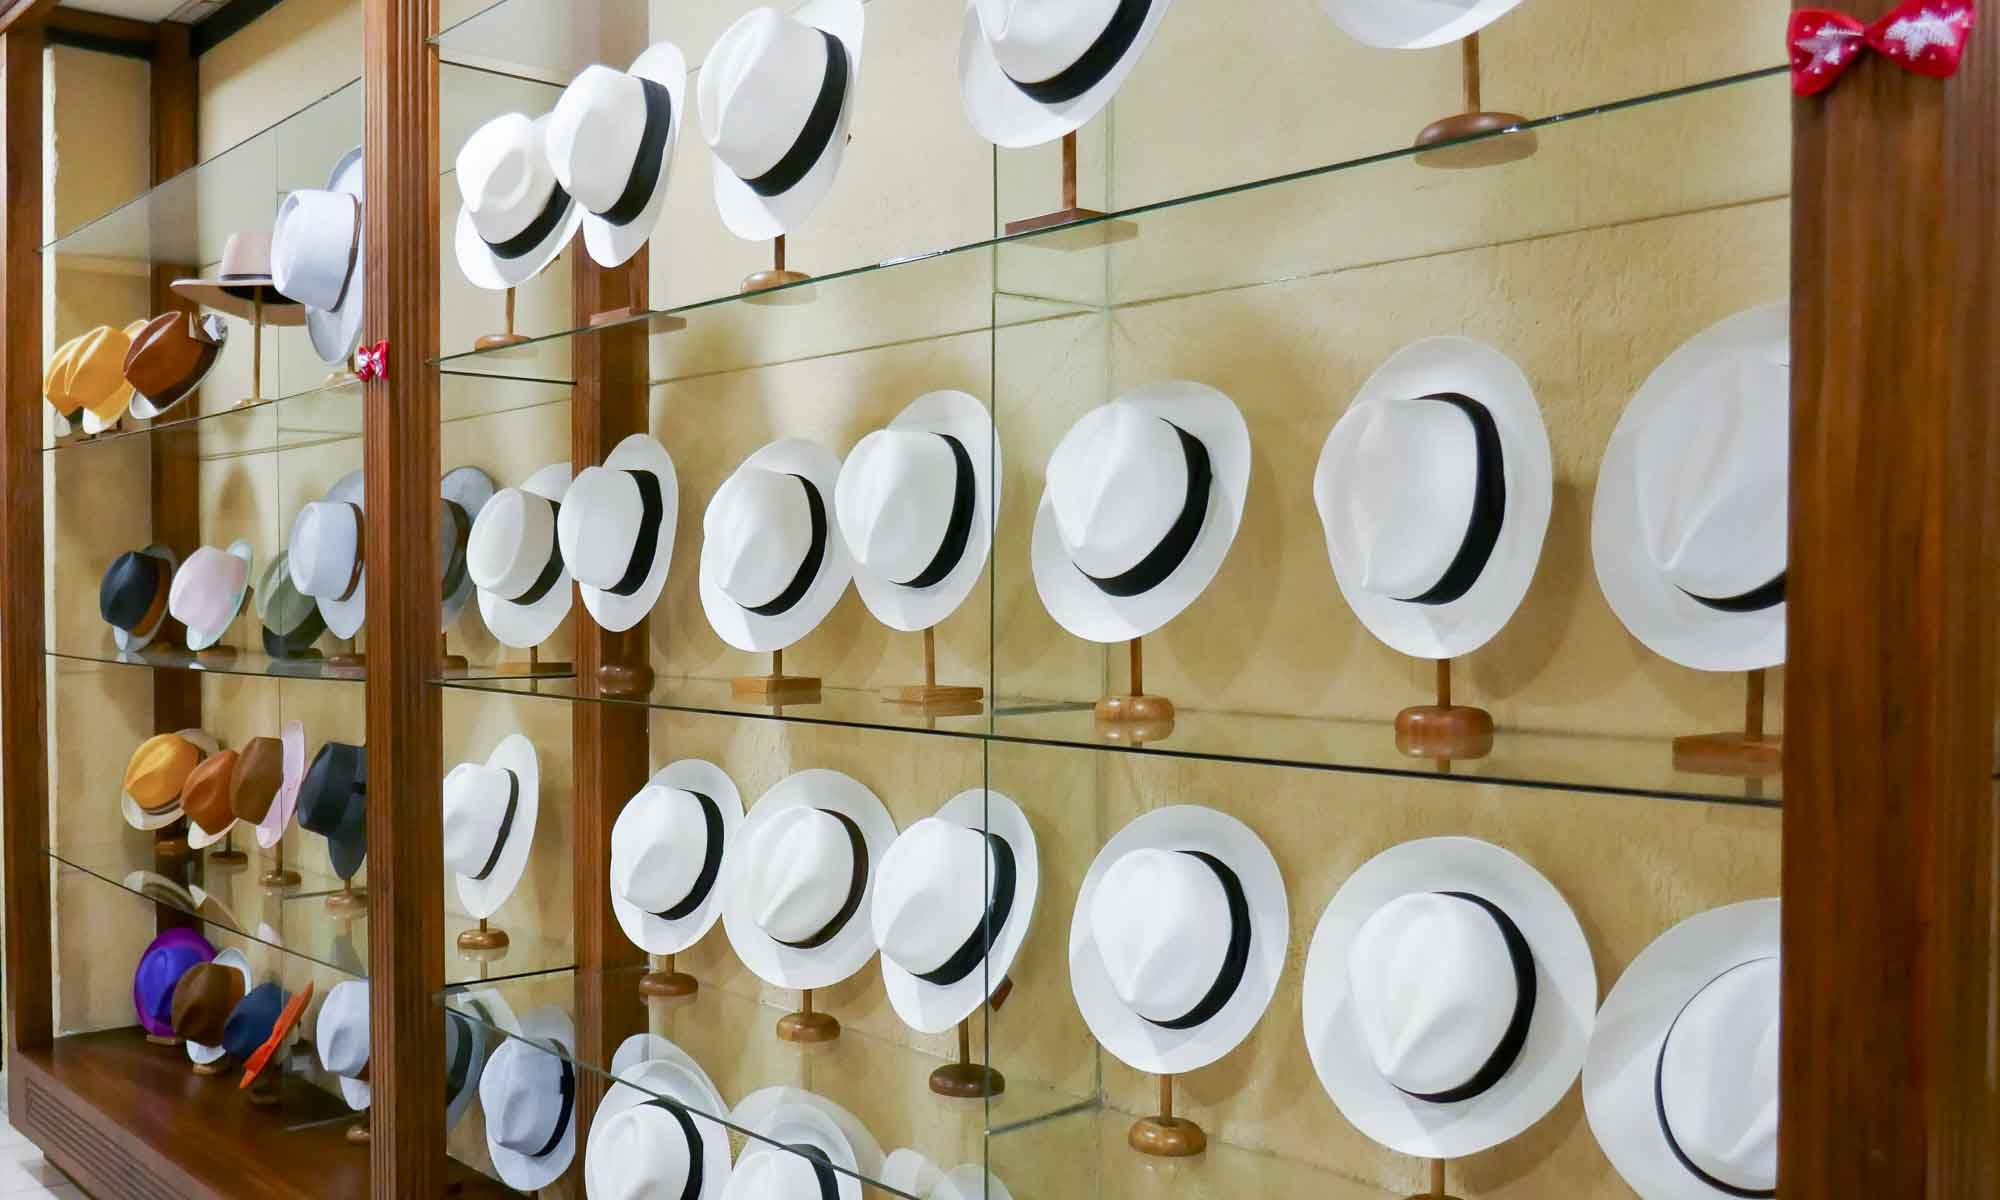 Panama hats in different sizes and qualities